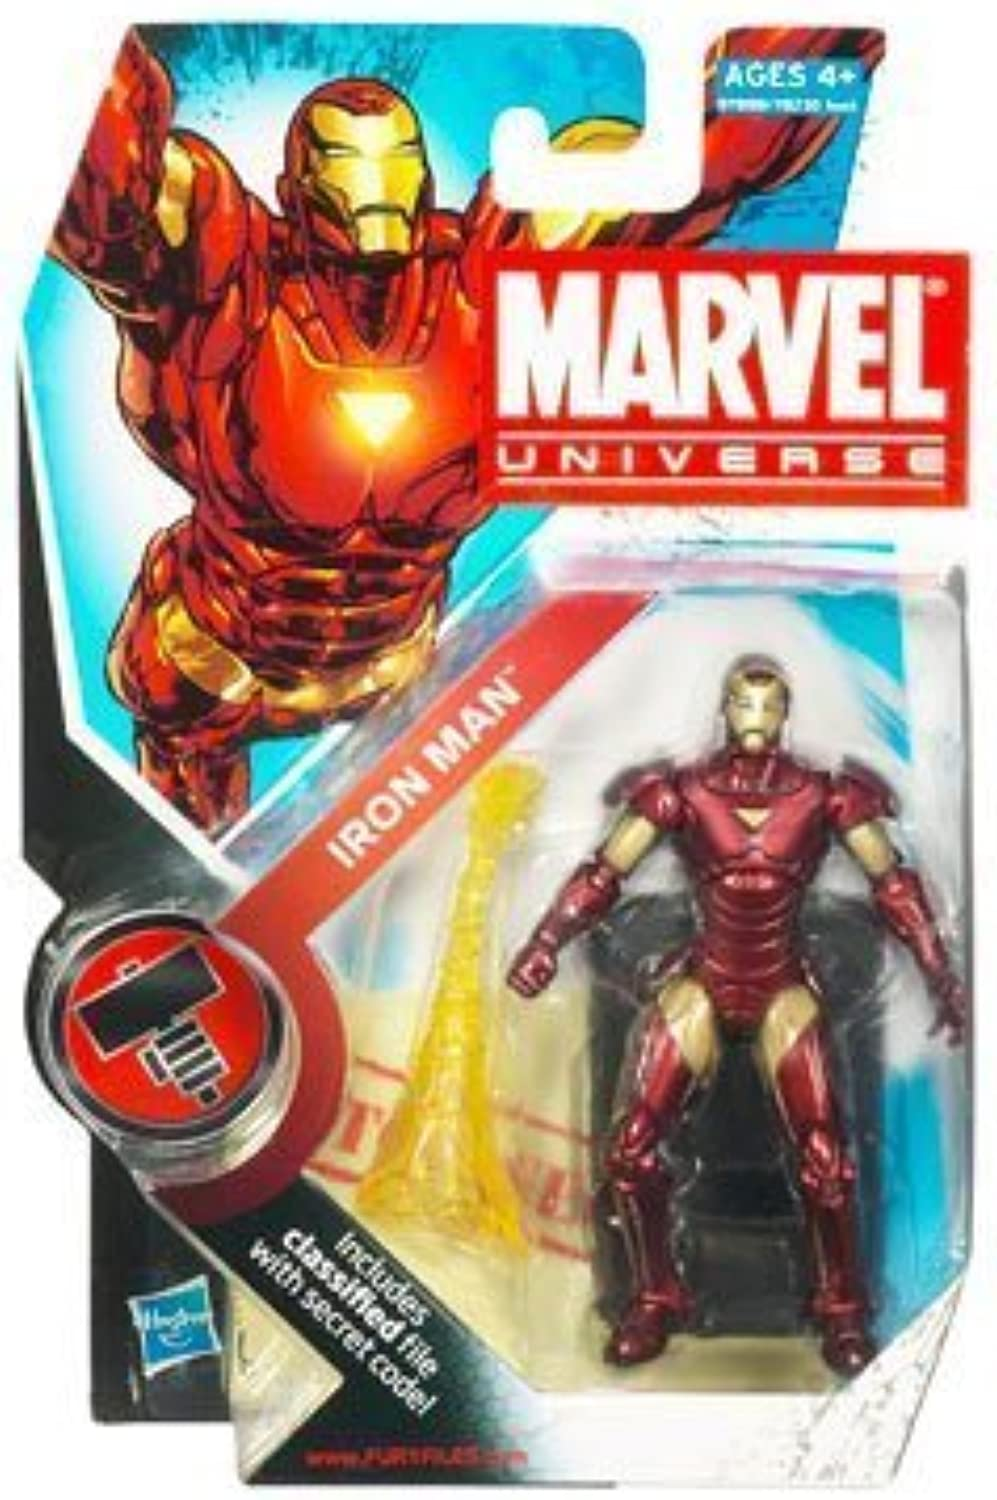 Marvel Universe 3 3 4 Inch Series 2 Action Figure Iron Man by Disney